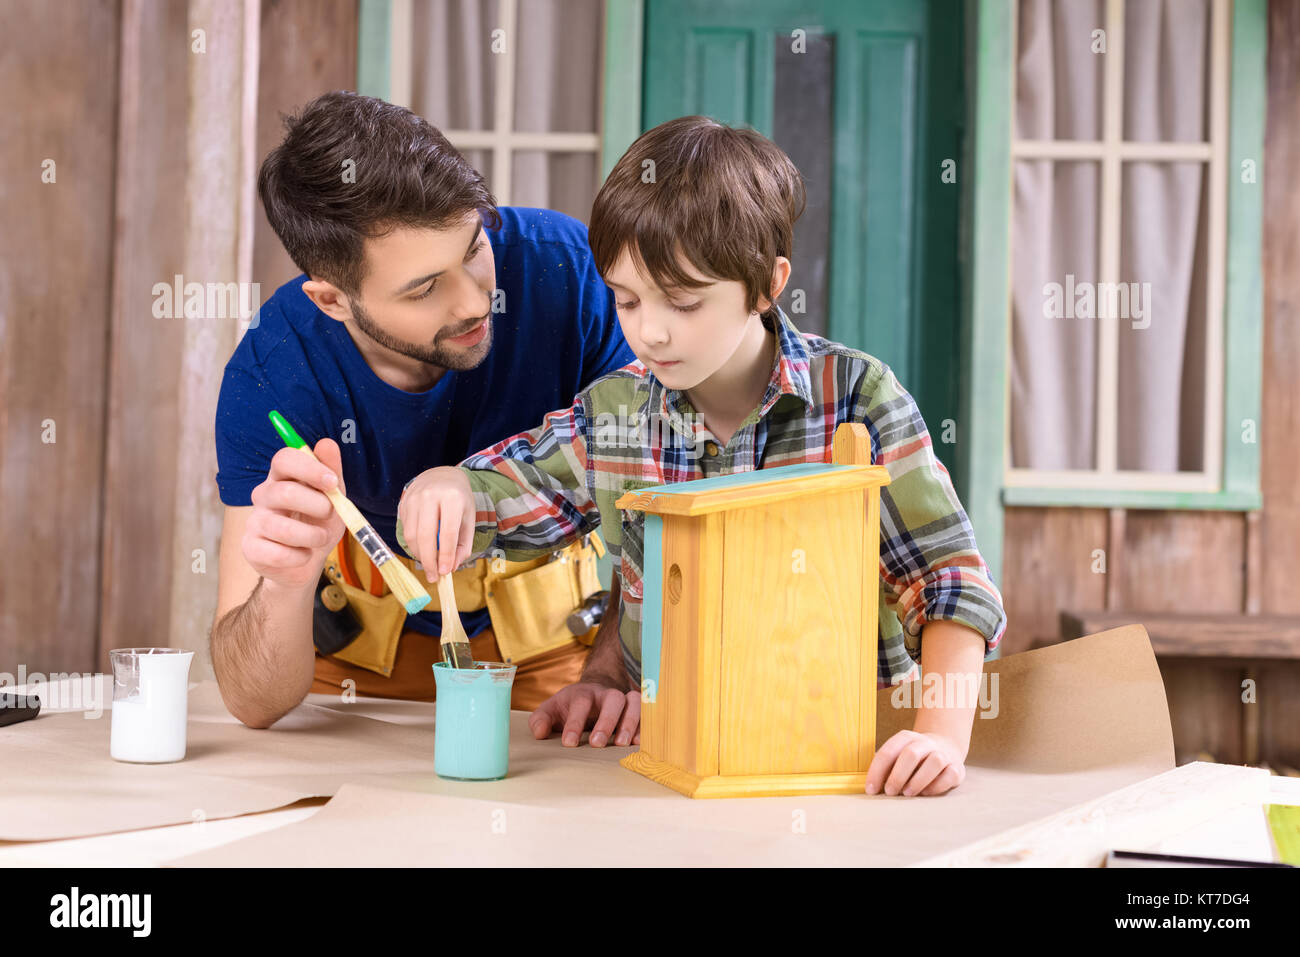 Concentrated father and son painting wooden birdhouse together - Stock Image